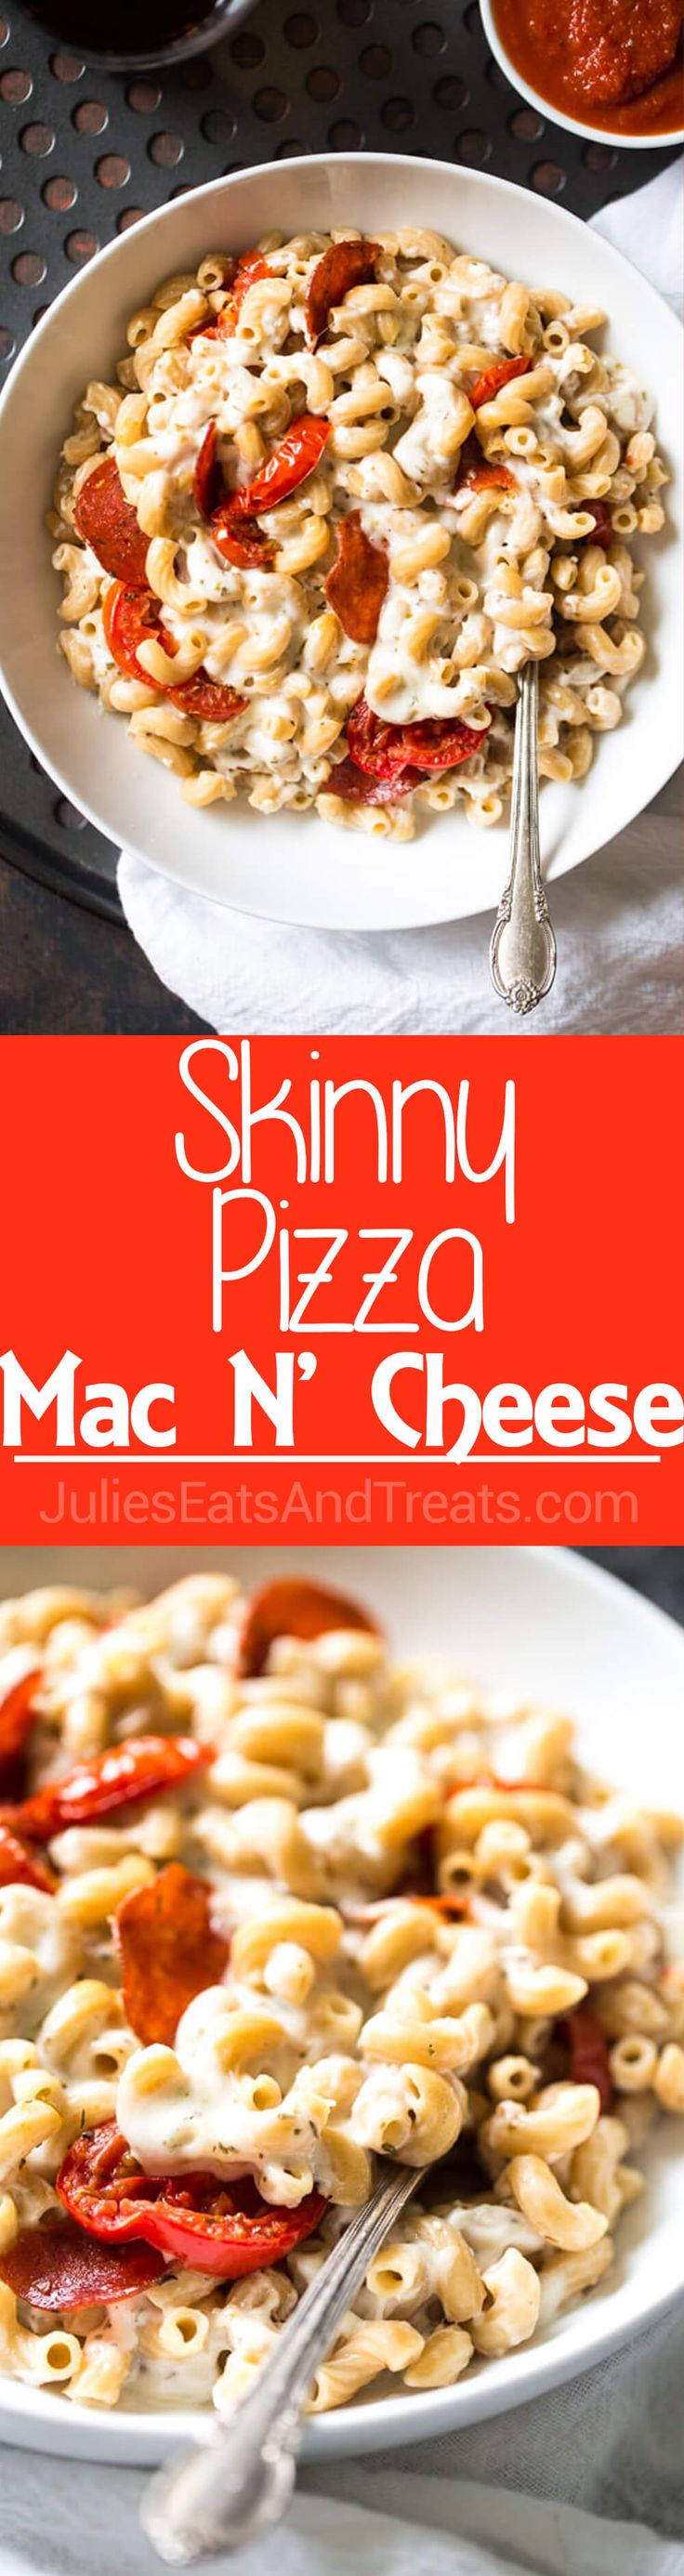 Skinny Pizza Mac N' Cheese - Two comforts food in one with this easy, weeknight meal that is made with Greek Yogurt to keep it light and healthy! ~ http://www.julieseatsandtreats.com